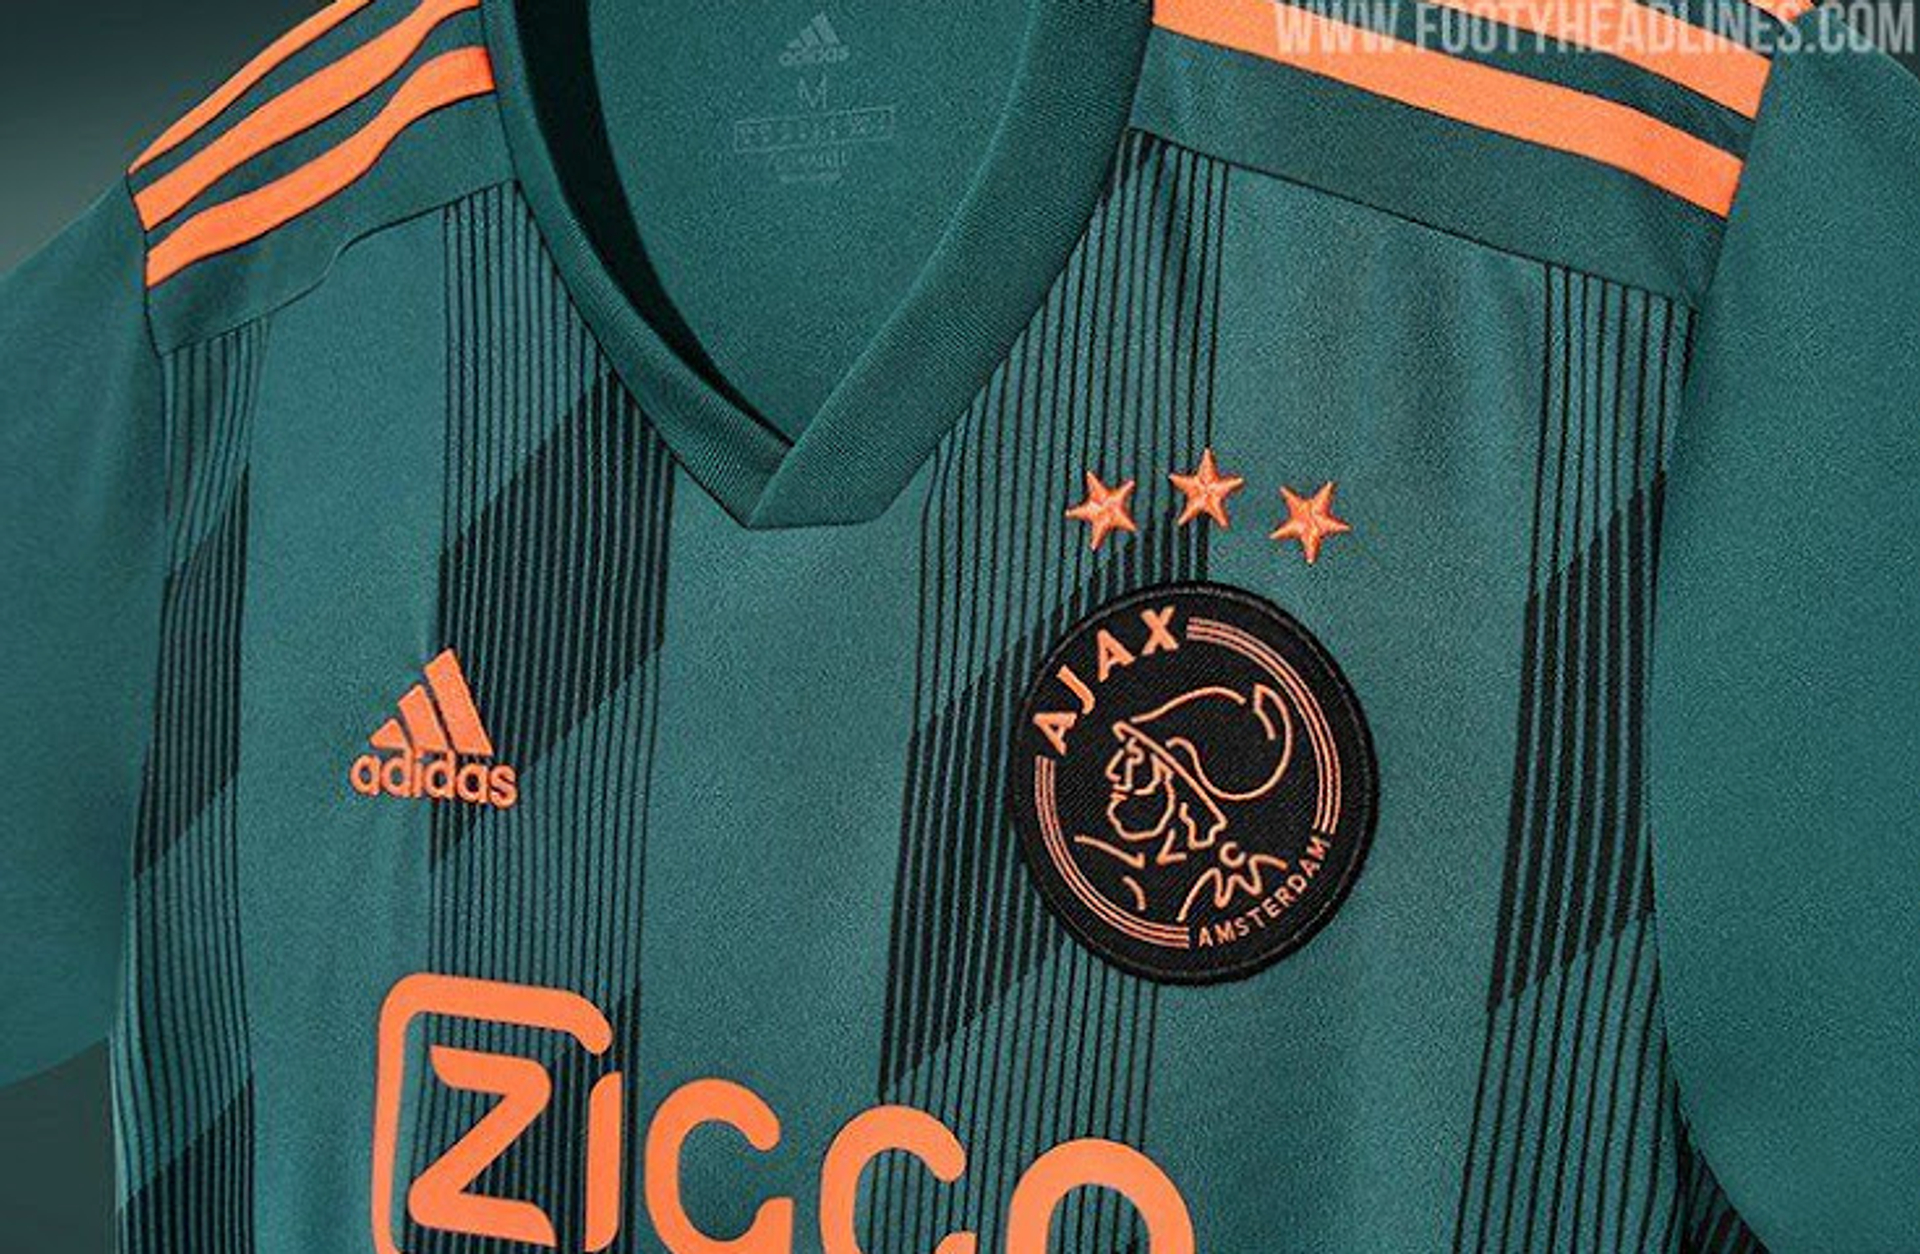 92635d0e Ajax have released their new away kit, and it's a thing of beauty   Footy  Accumulators